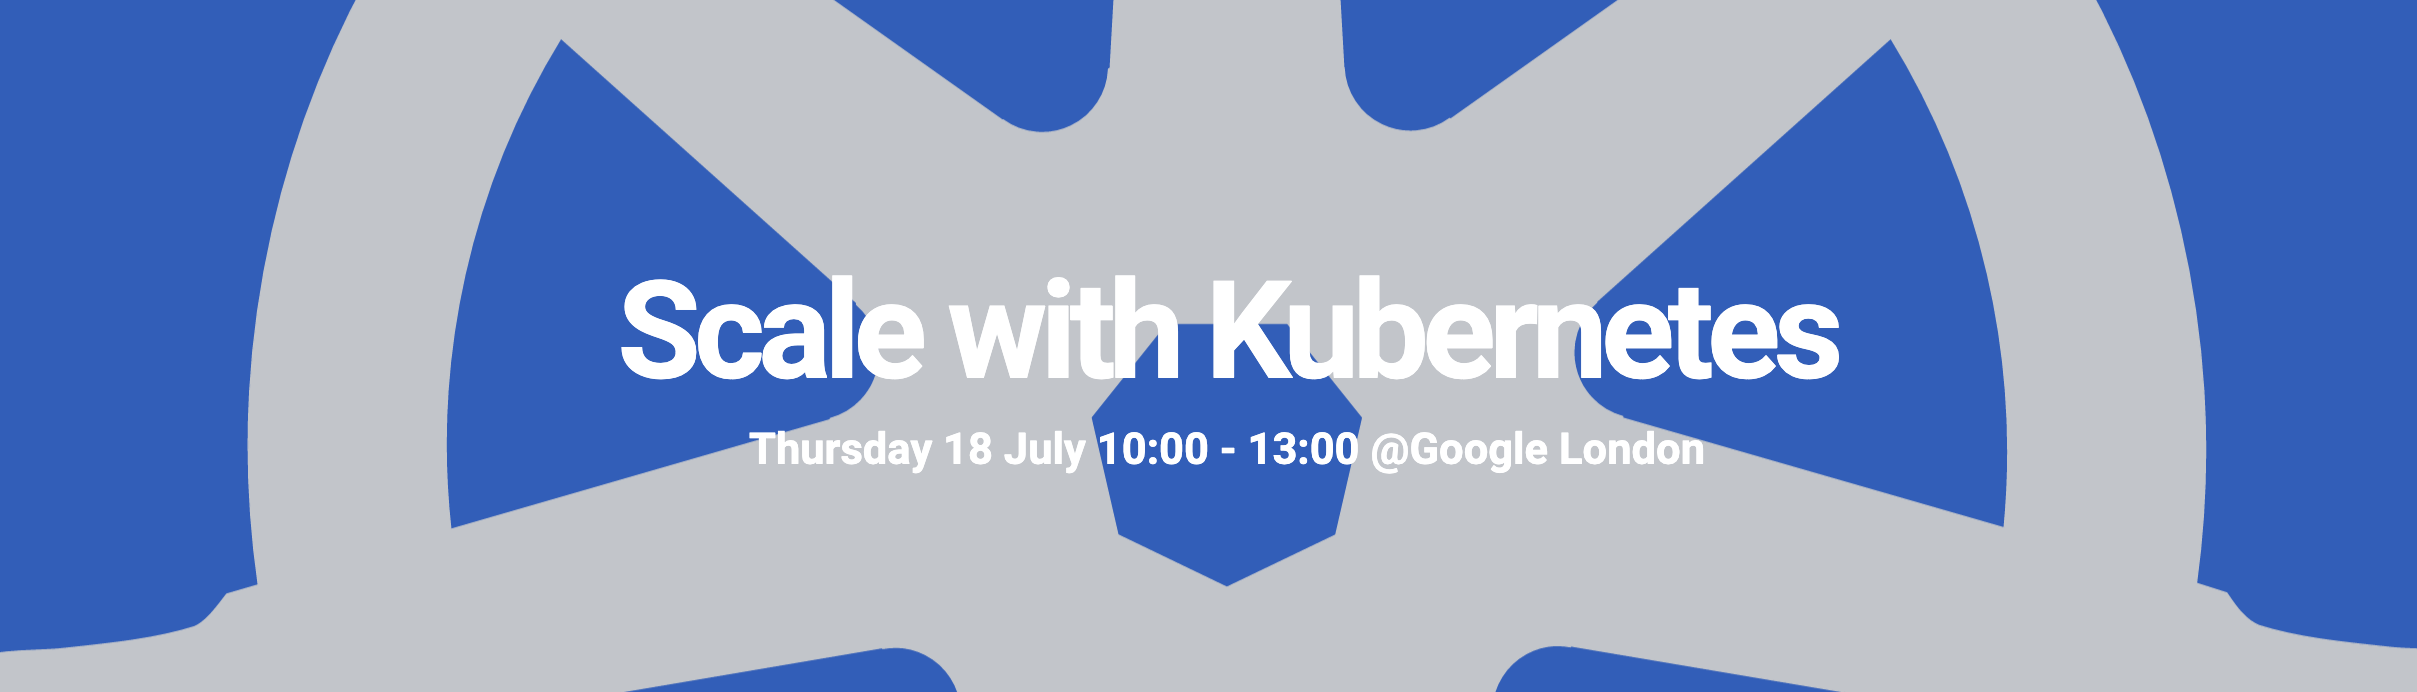 Scale with Kubernetes Banner 2-1